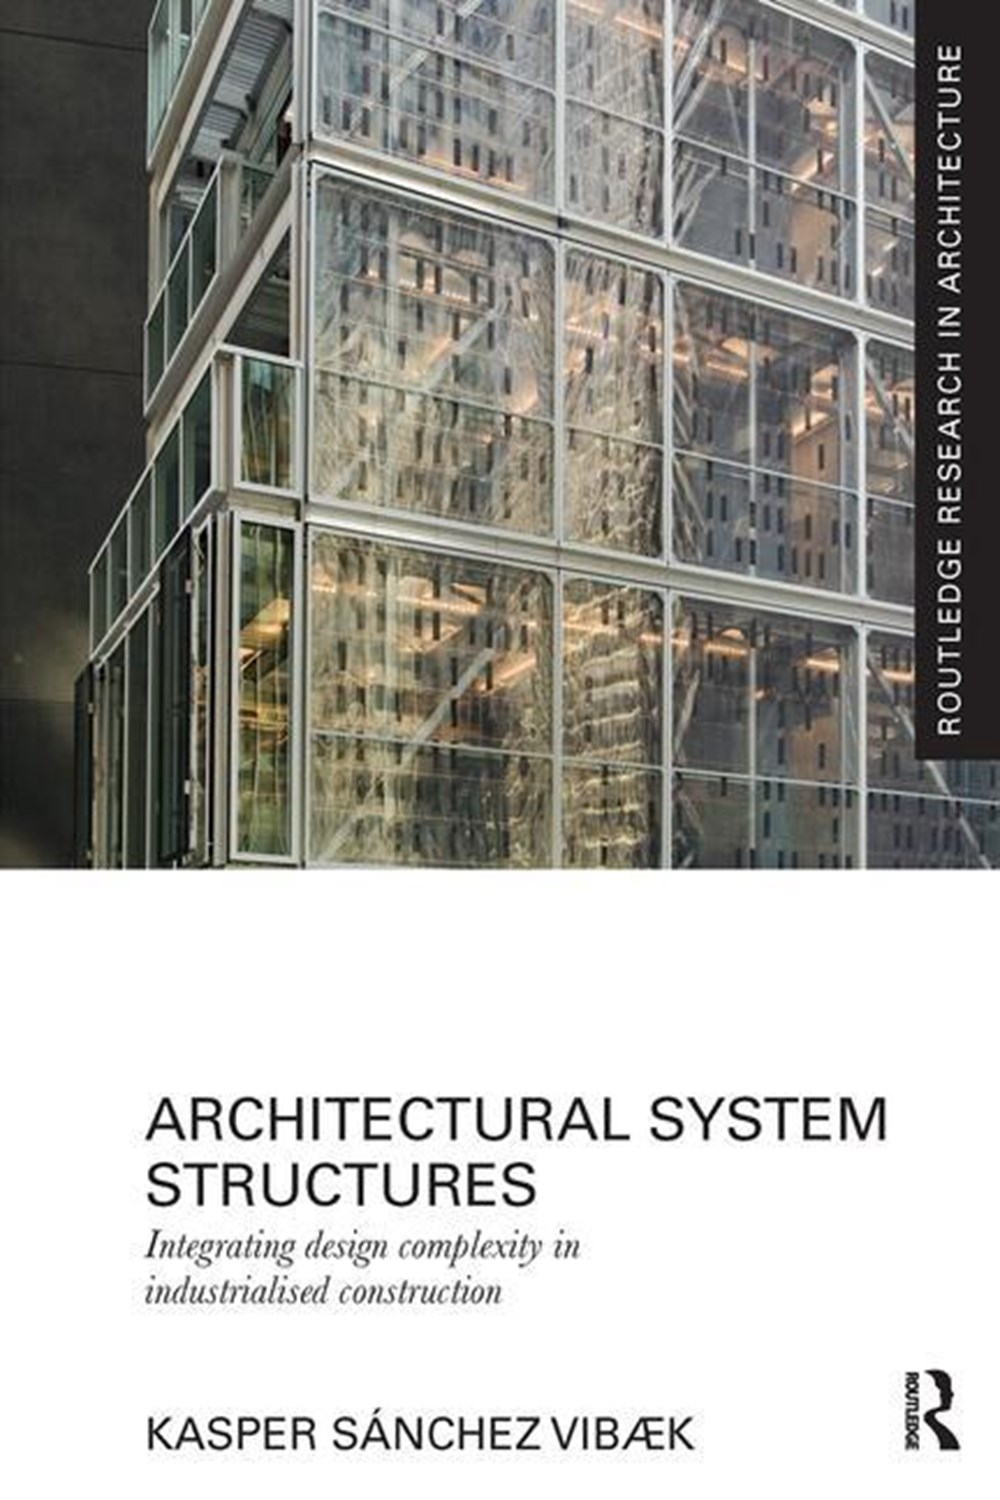 Architectural System Structures Integrating Design Complexity in Industrialised Construction